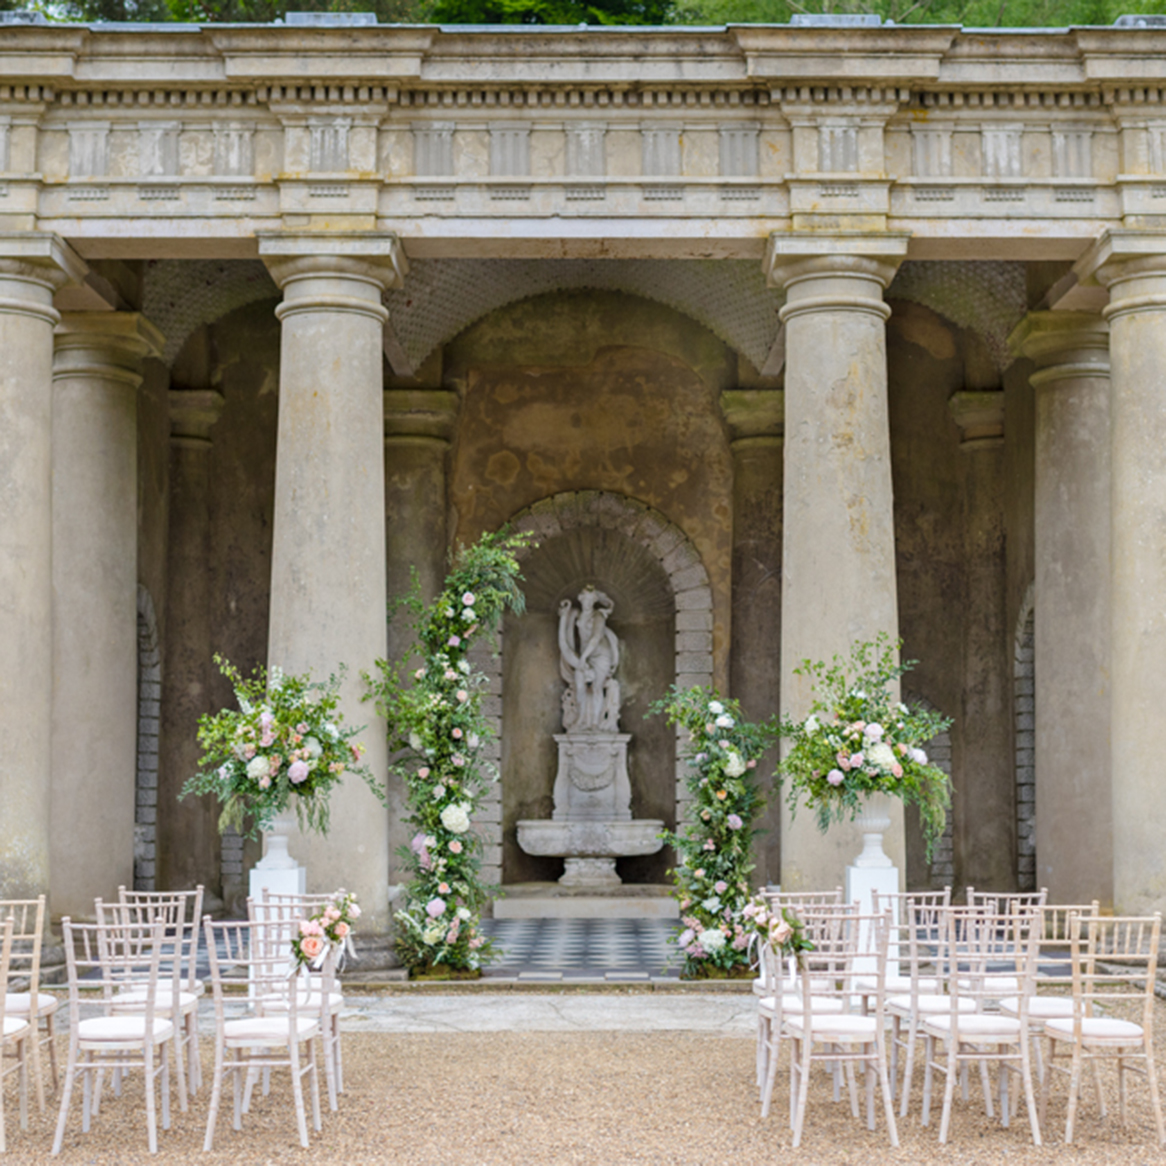 Outdoor wedding ceremony at Wotton House